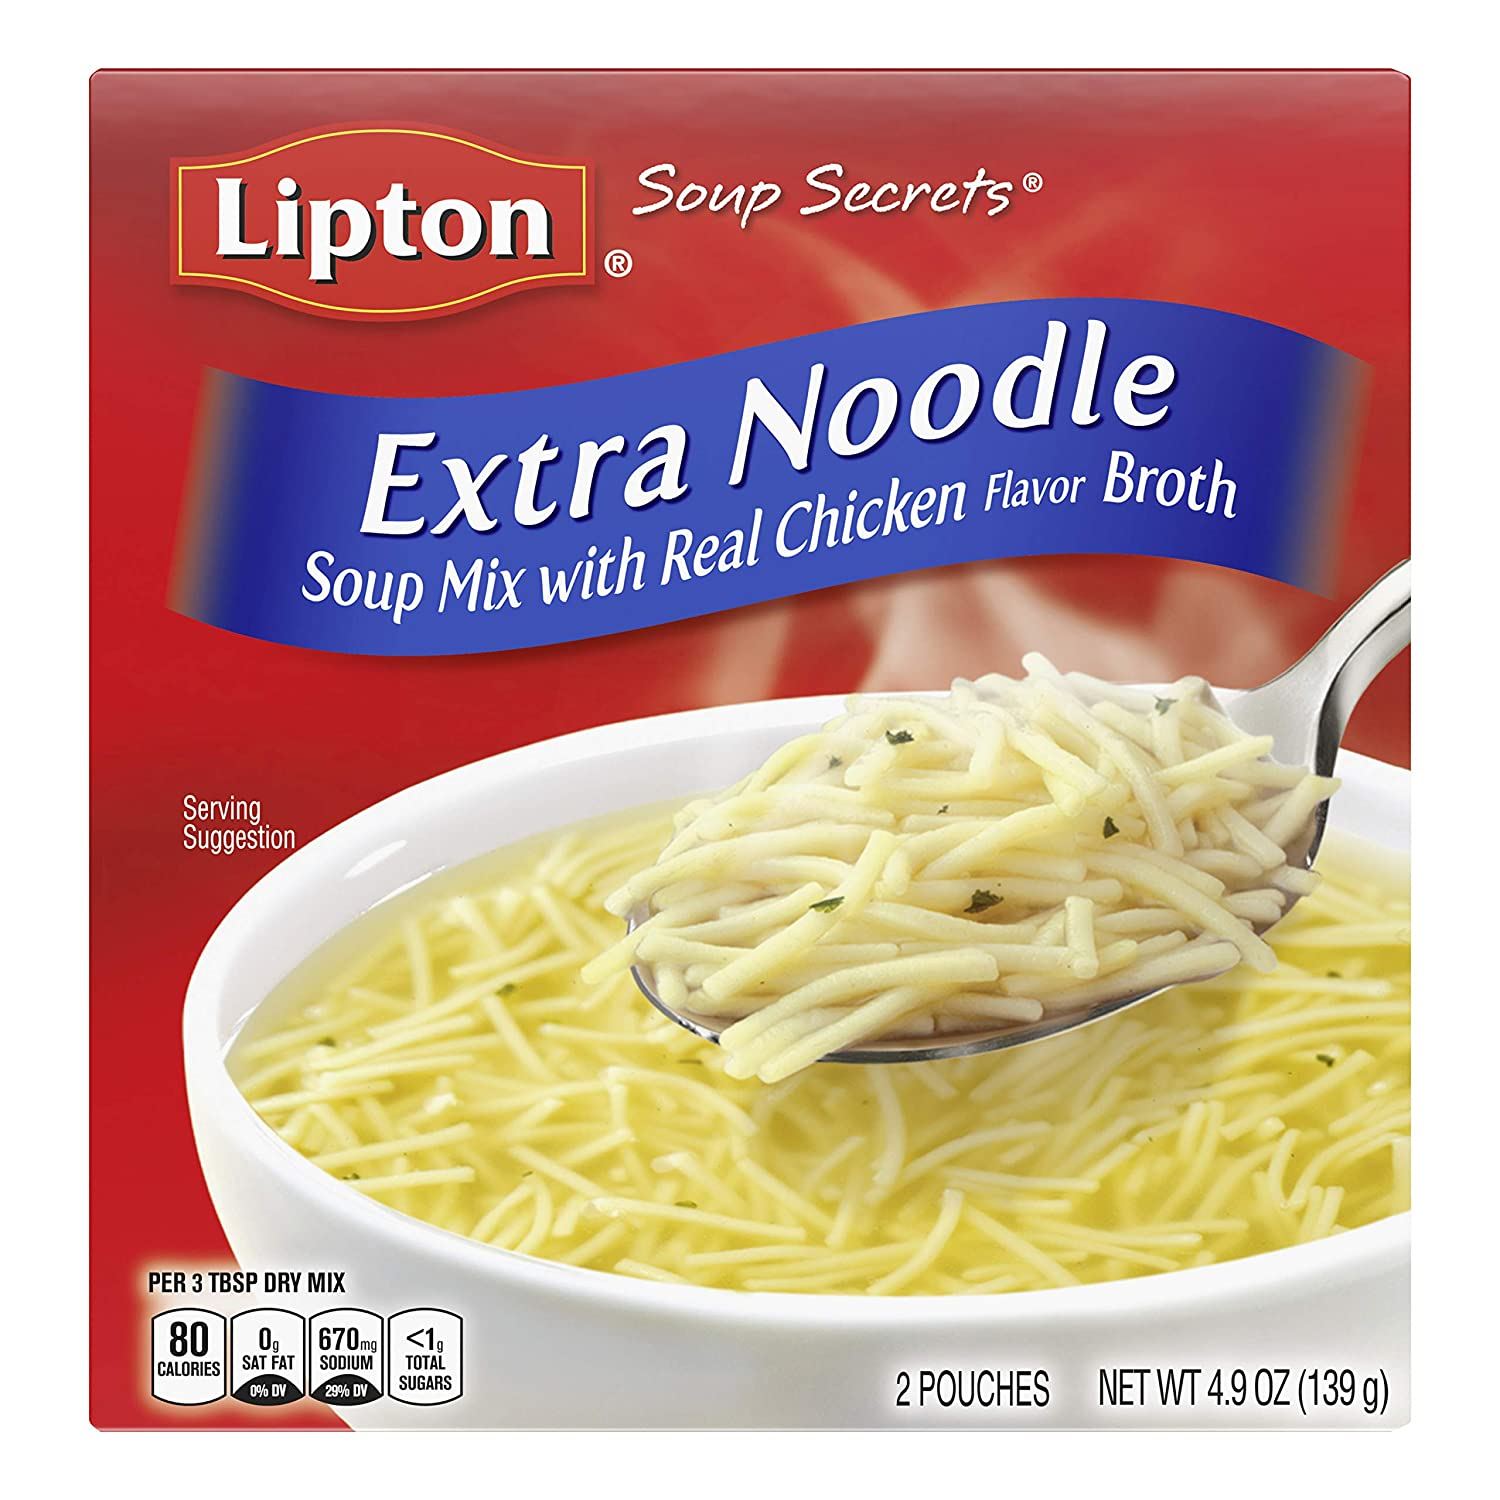 Lipton Soup Secrets Instant Soup Mix For a Warm Bowl of Soup Extra Noodle Soup Made With Real Chicken Broth Flavor 4.9 Oz (Pack of 12)